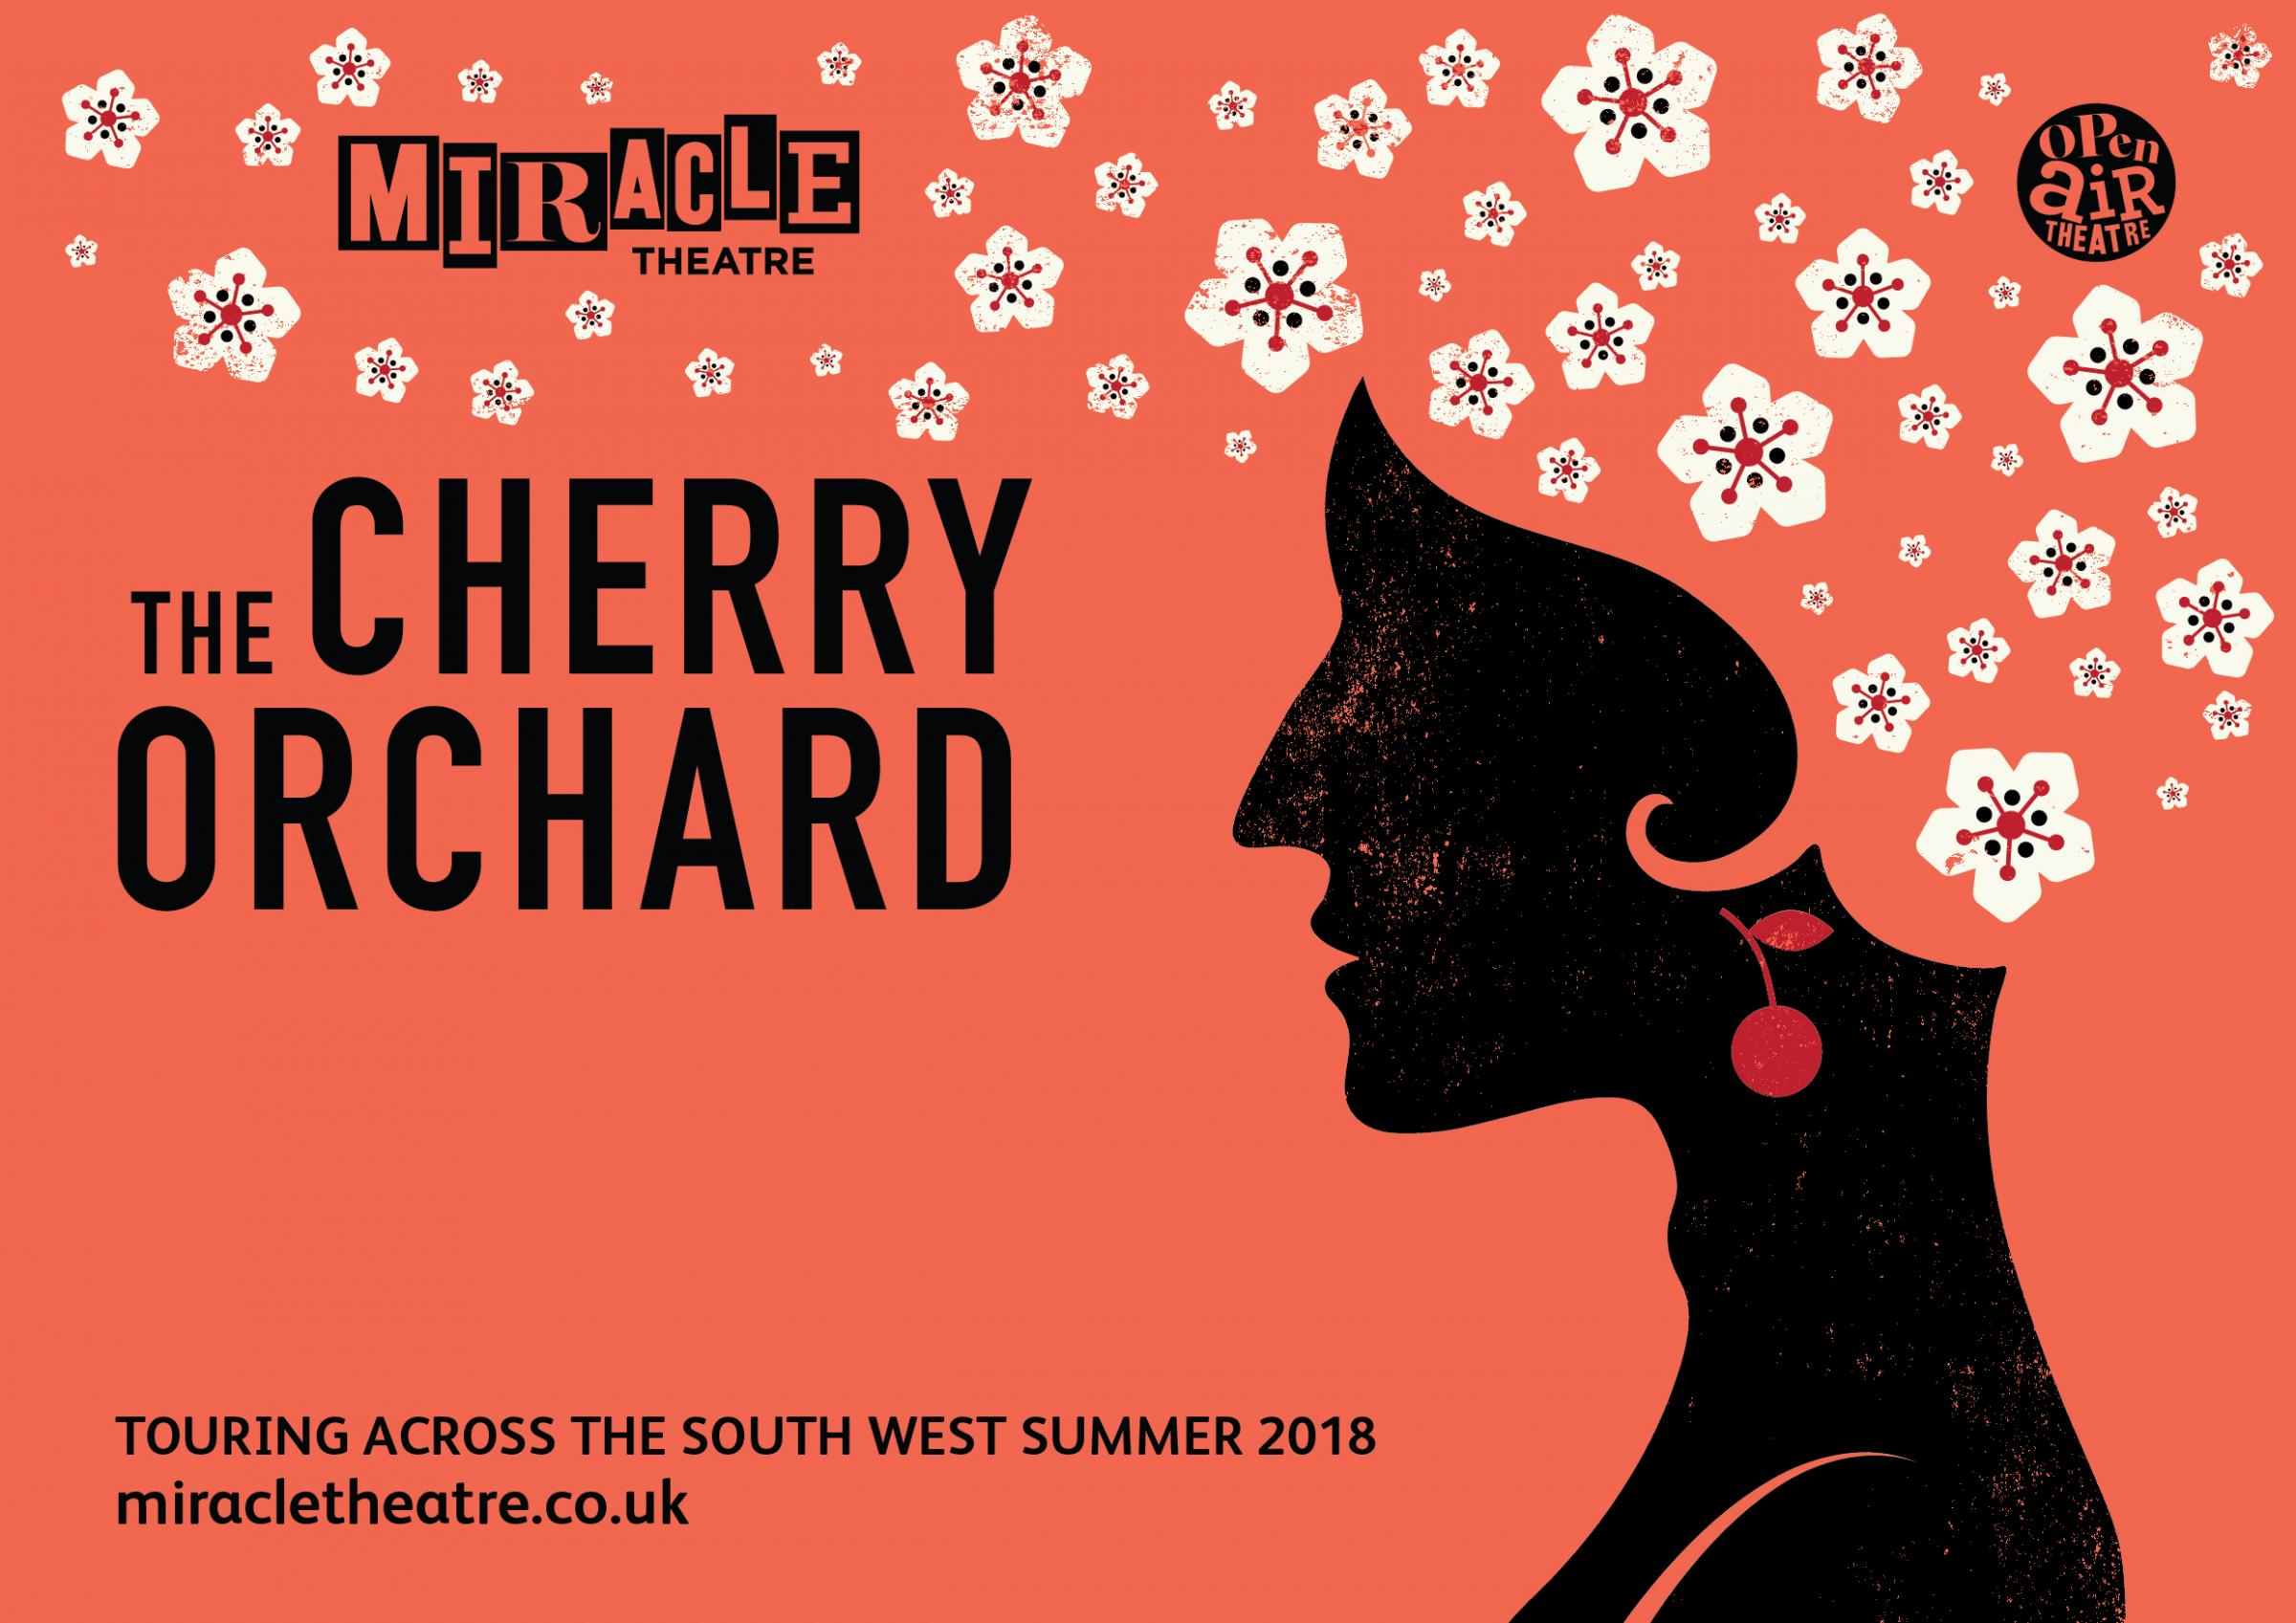 Miracle Theatre's The Cherry Orchard